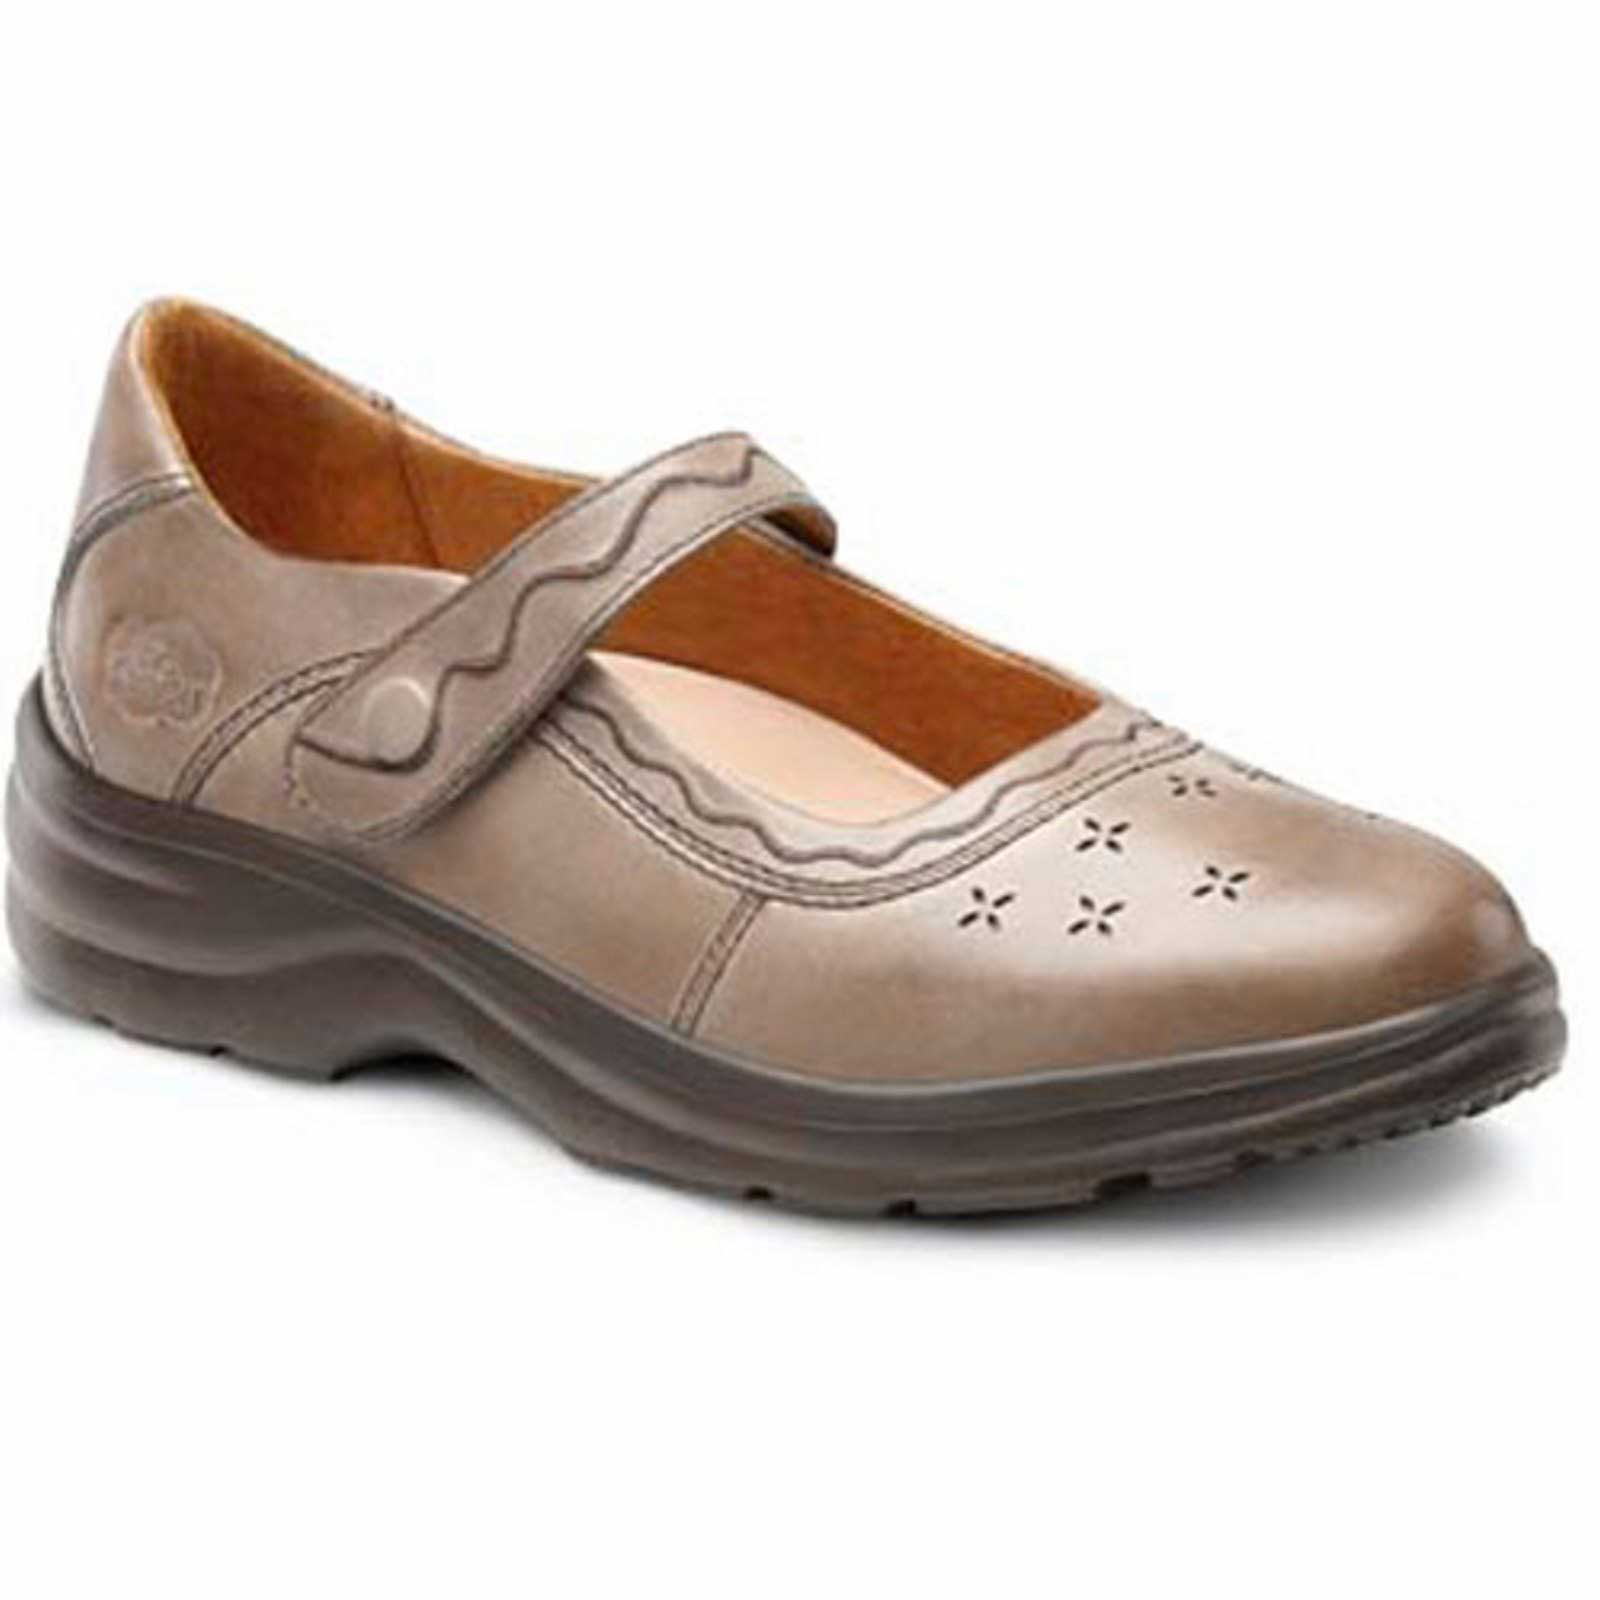 Image is loading Dr-Comfort-Cindee-Womens-Diabetic-Extra-Depth-Heel